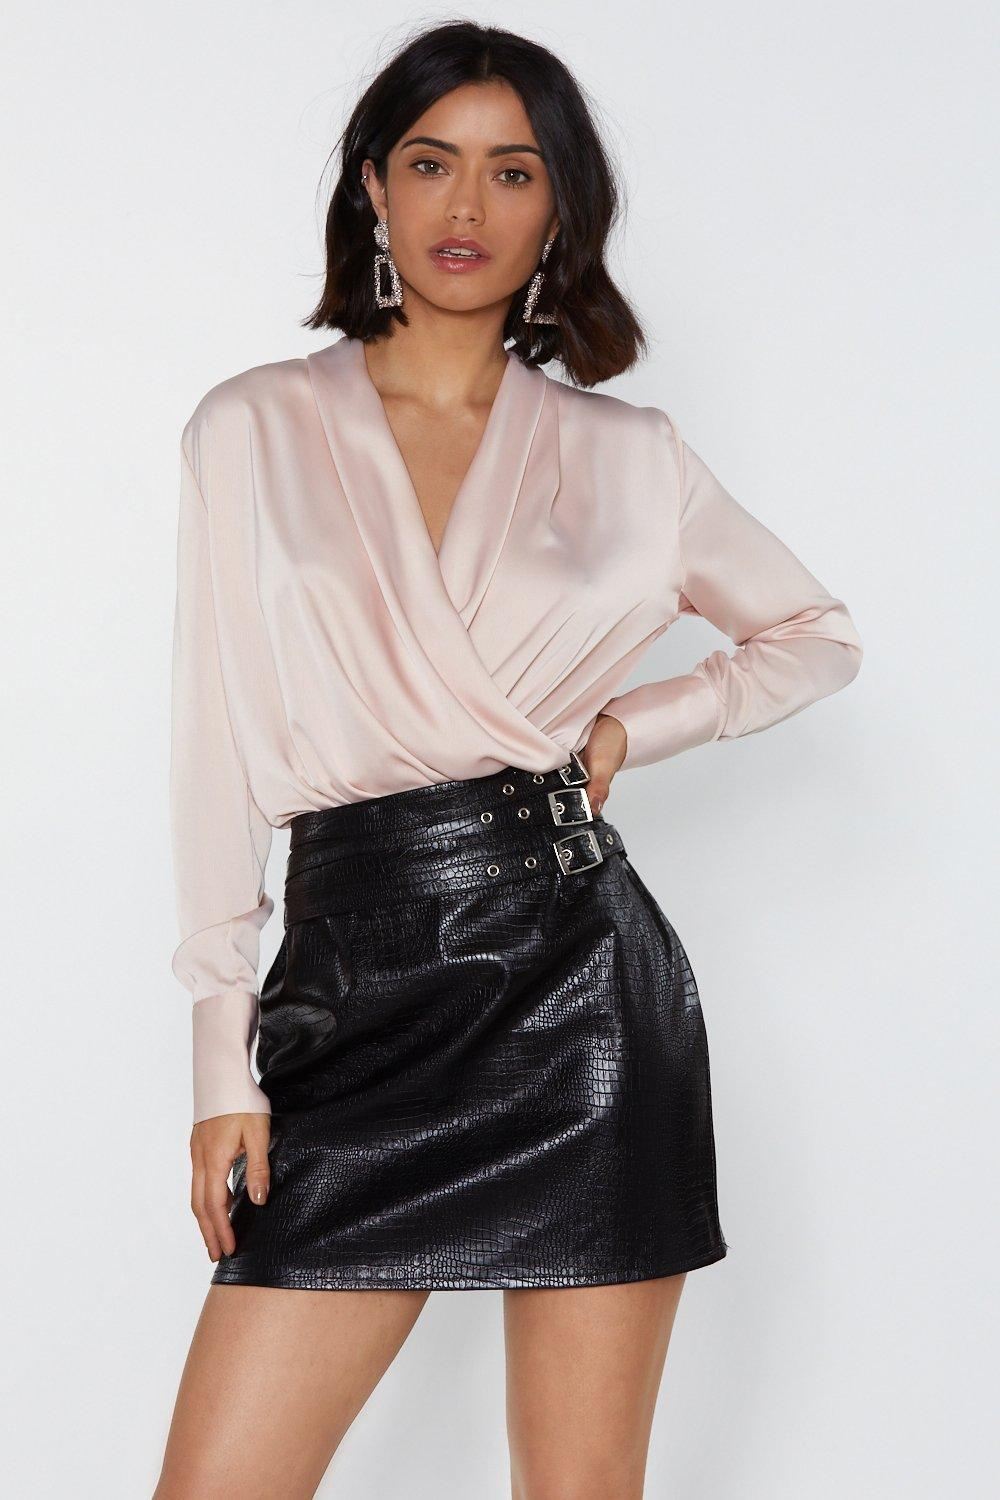 77cbcb552bf Drape Two Plunging Satin Blouse   Shop Clothes at Nasty Gal!